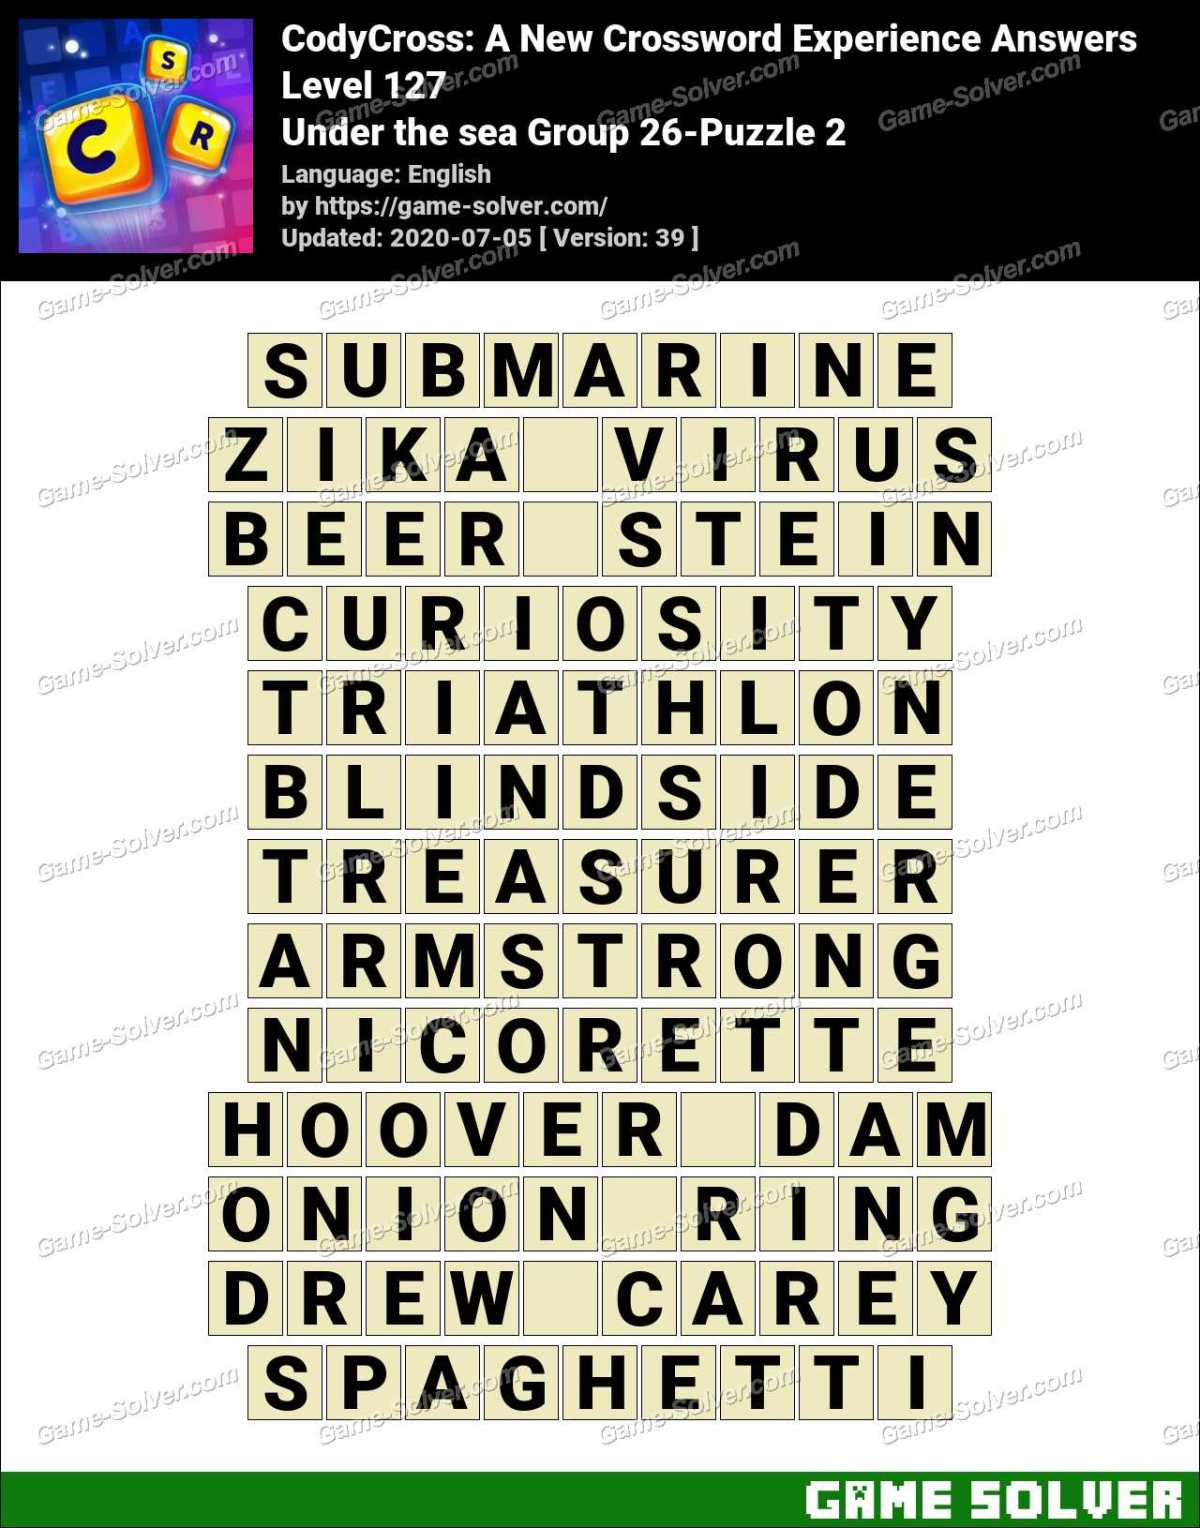 CodyCross Under the sea Group 26-Puzzle 2 Answers